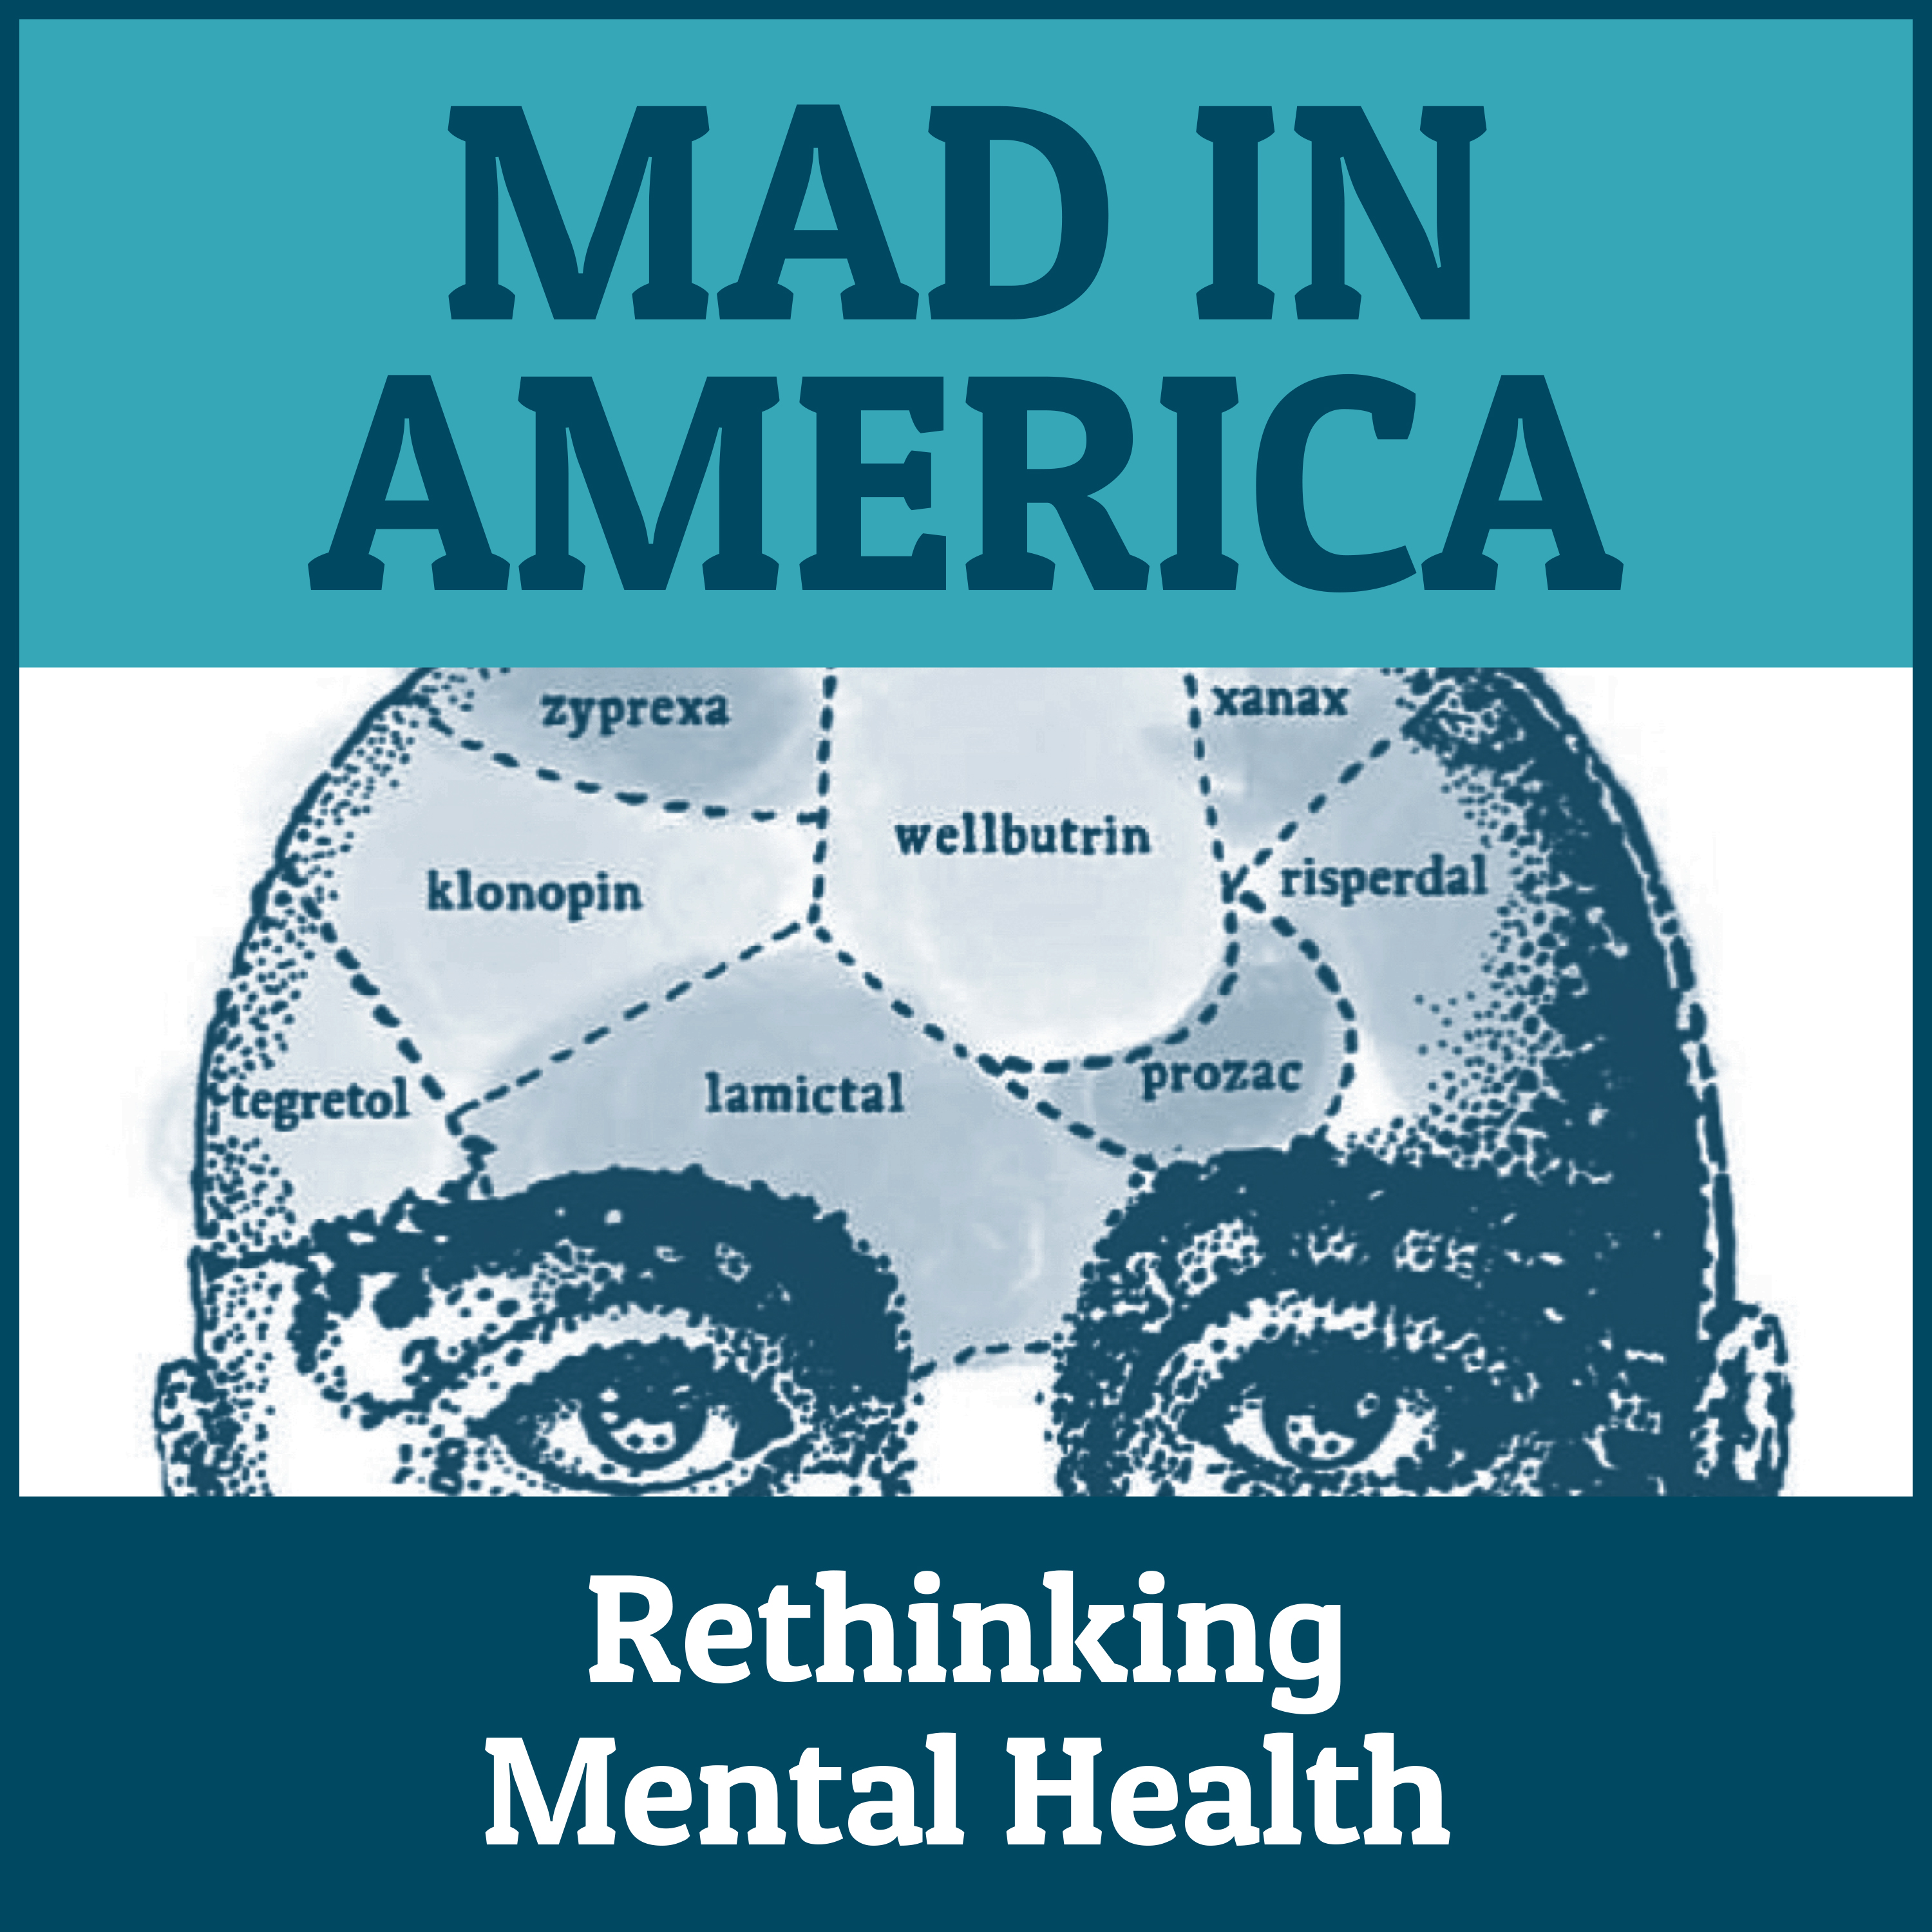 Mad in America: Rethinking Mental Health - Patricia Rush - Getting to the Root Causes of Suffering